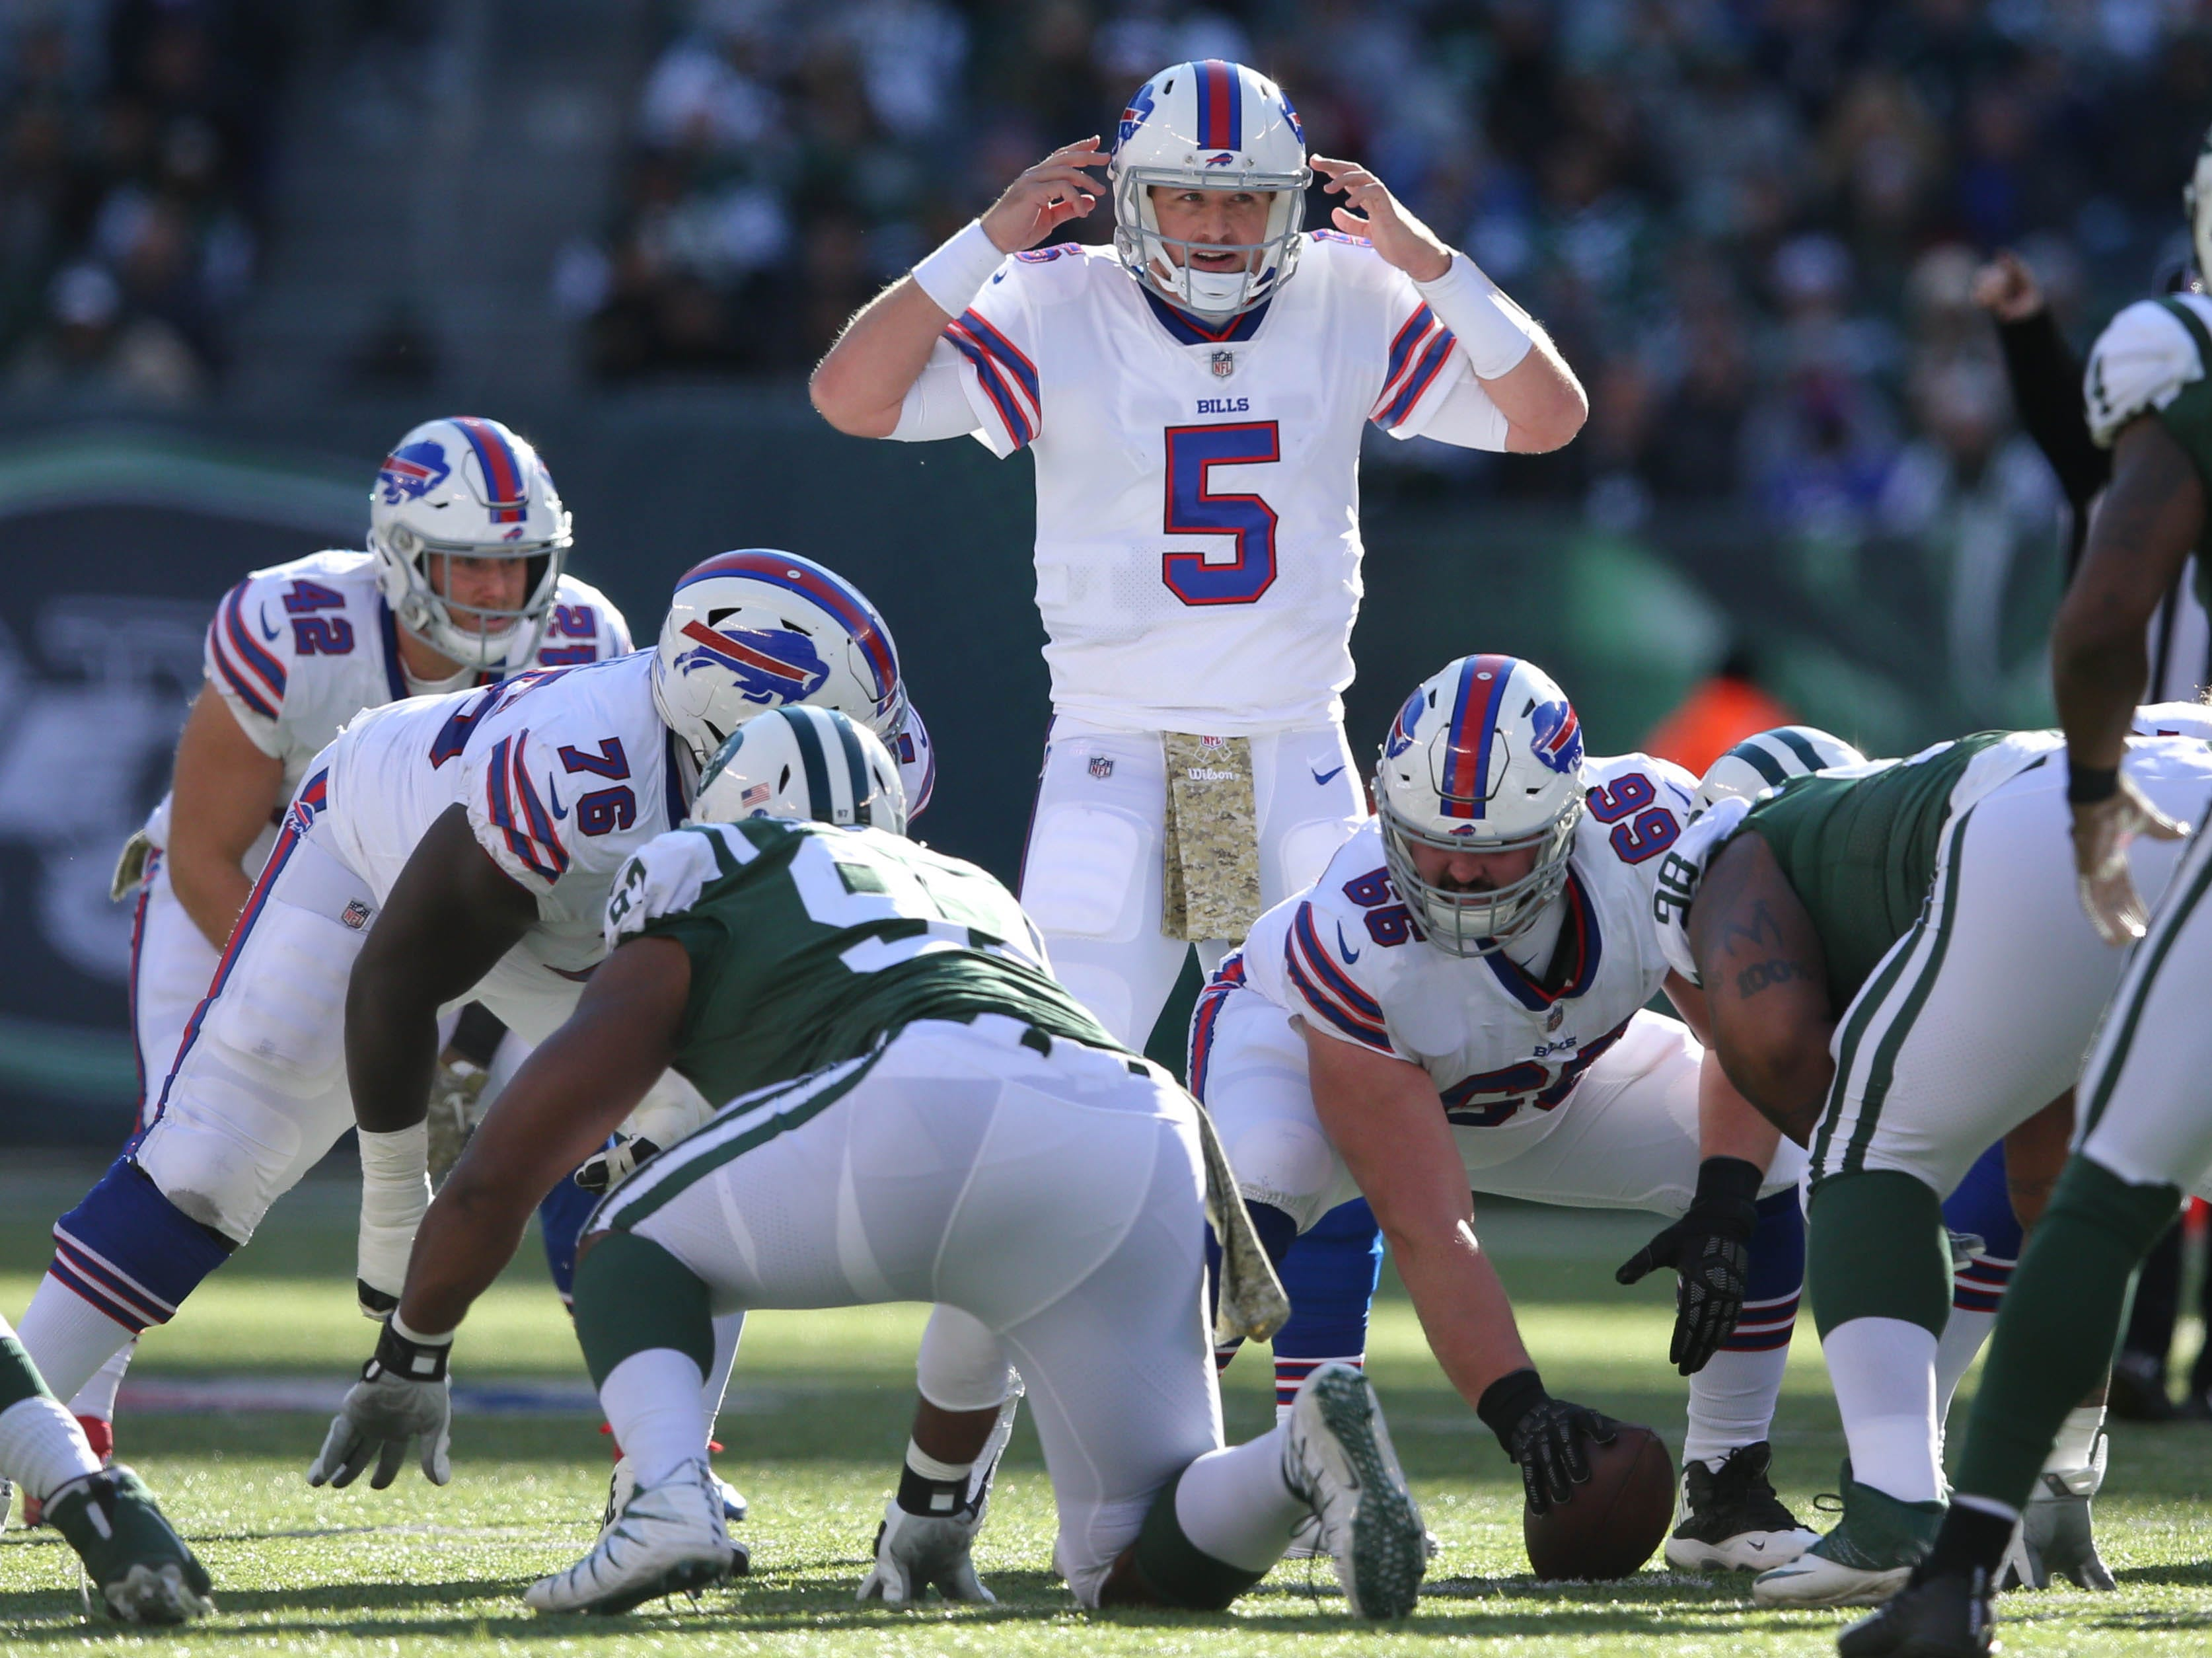 Nov 11, 2018; East Rutherford, NJ, USA; Buffalo Bills quarterback Matt Barkley (5) calls a play against the New York Jets during the second quarter at MetLife Stadium. Mandatory Credit: Brad Penner-USA TODAY Sports